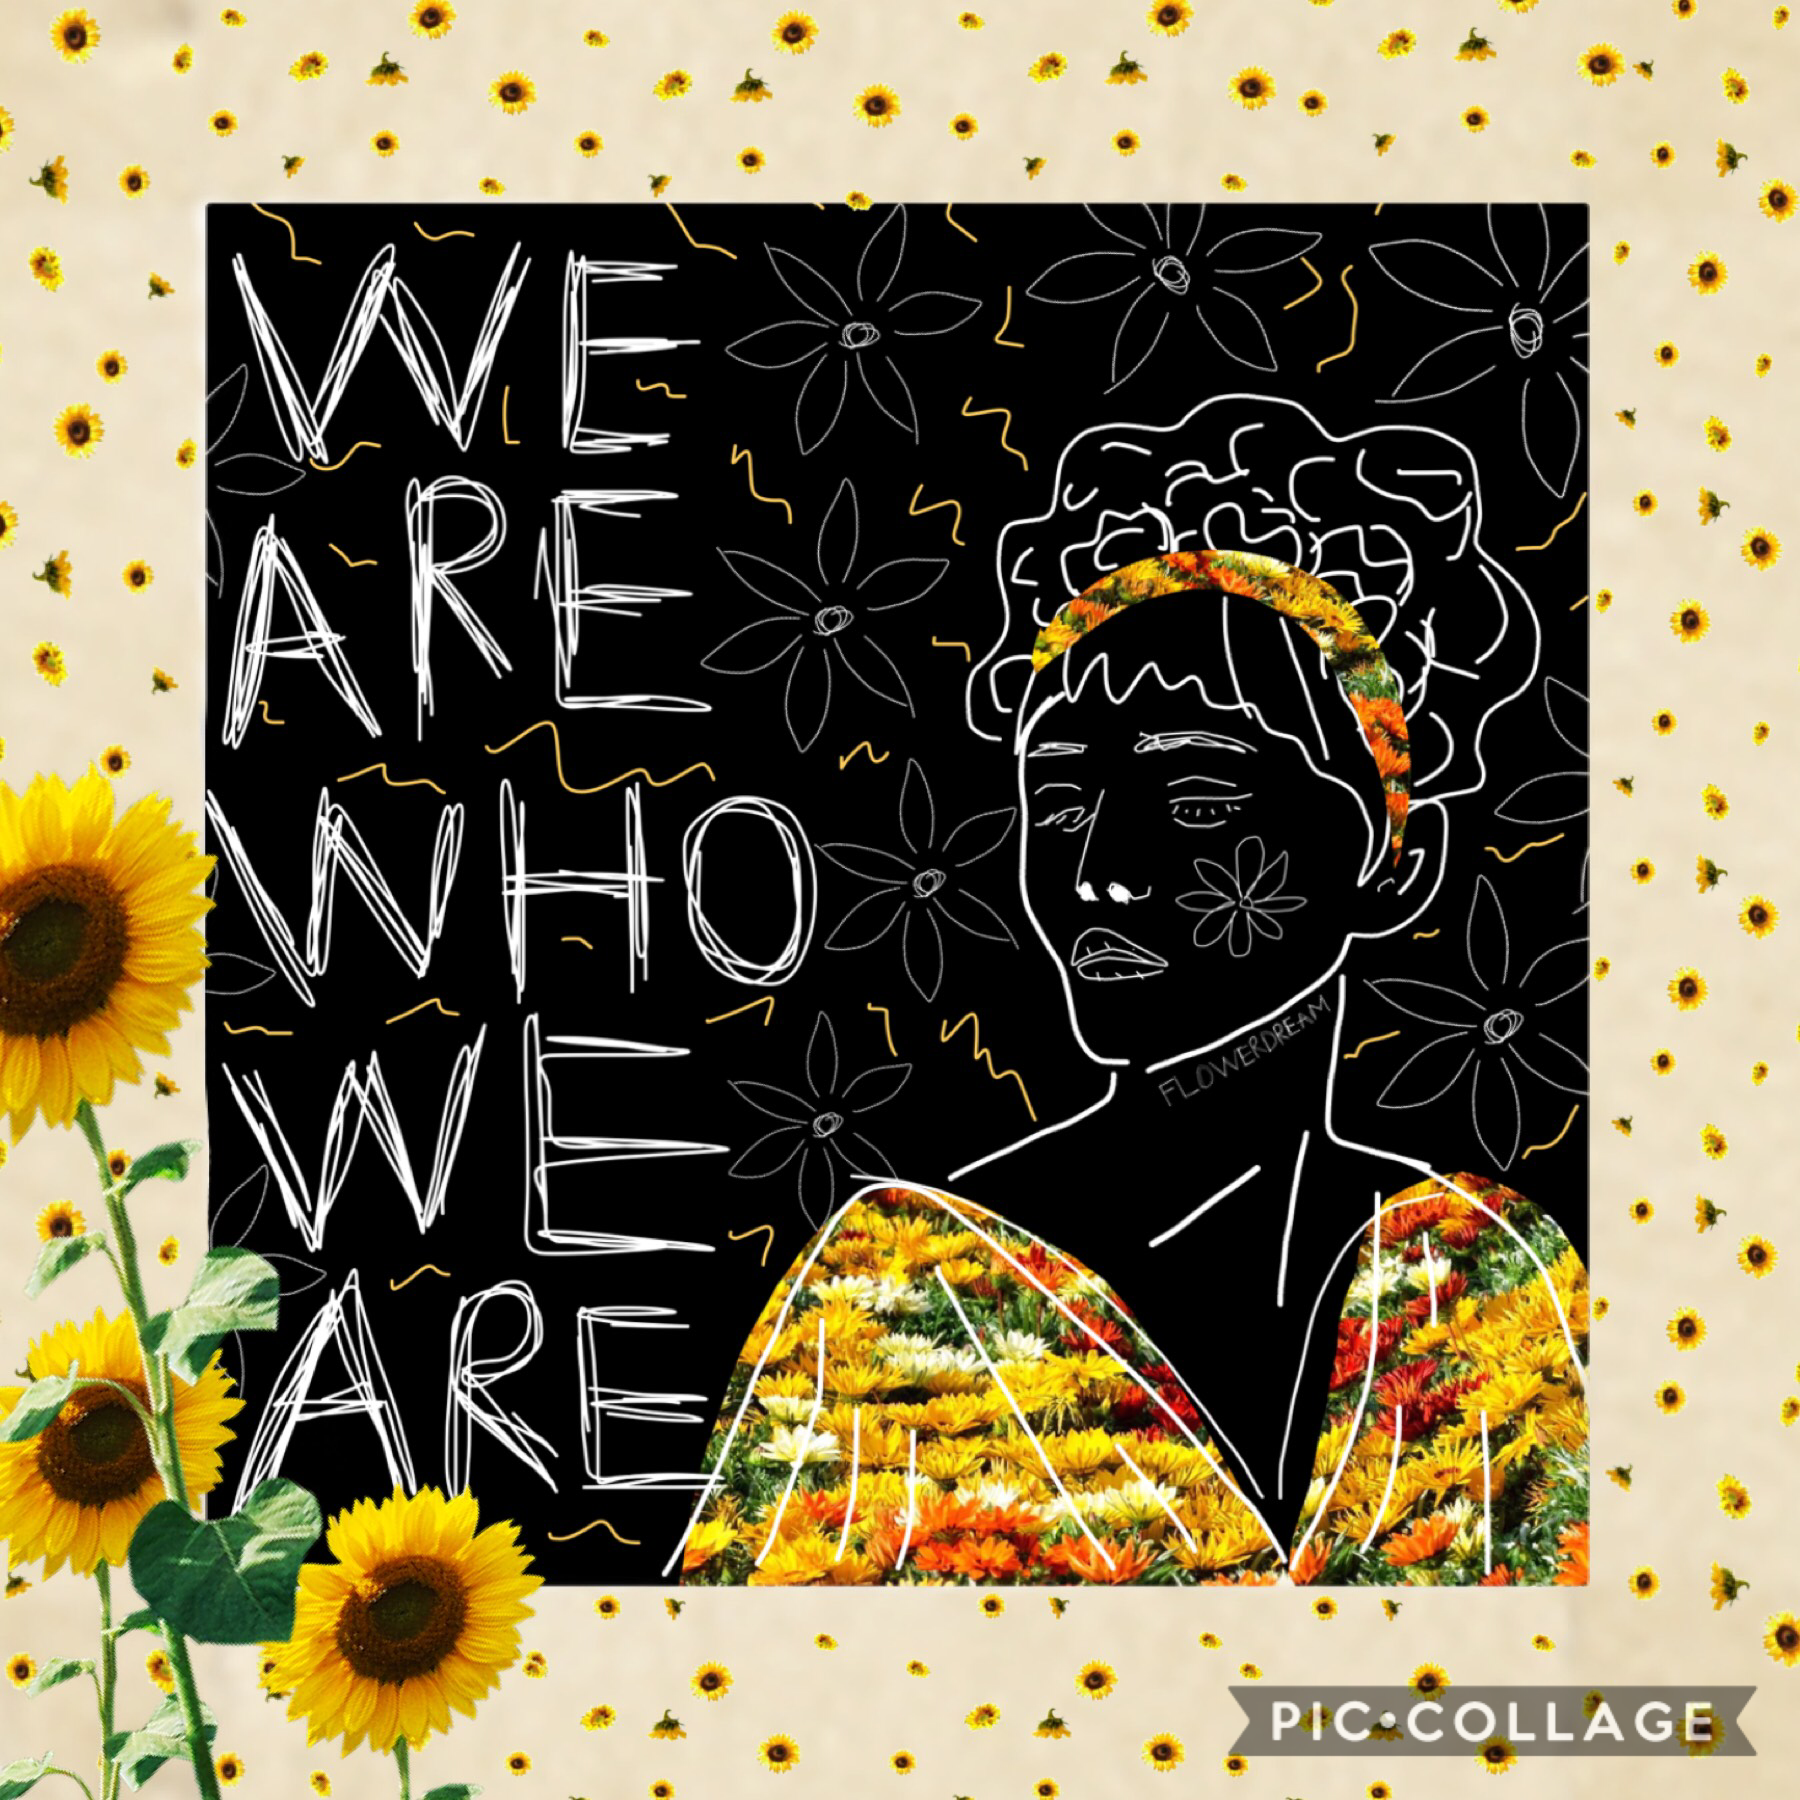 🌿🌻This collage is inspired by delartista. She has wonderful collages and you should go follow her! Her style is super unique. Also yes, that is Grace VanderWaal in the picture. If you don't know who she is, you should definitely go and listen to her music